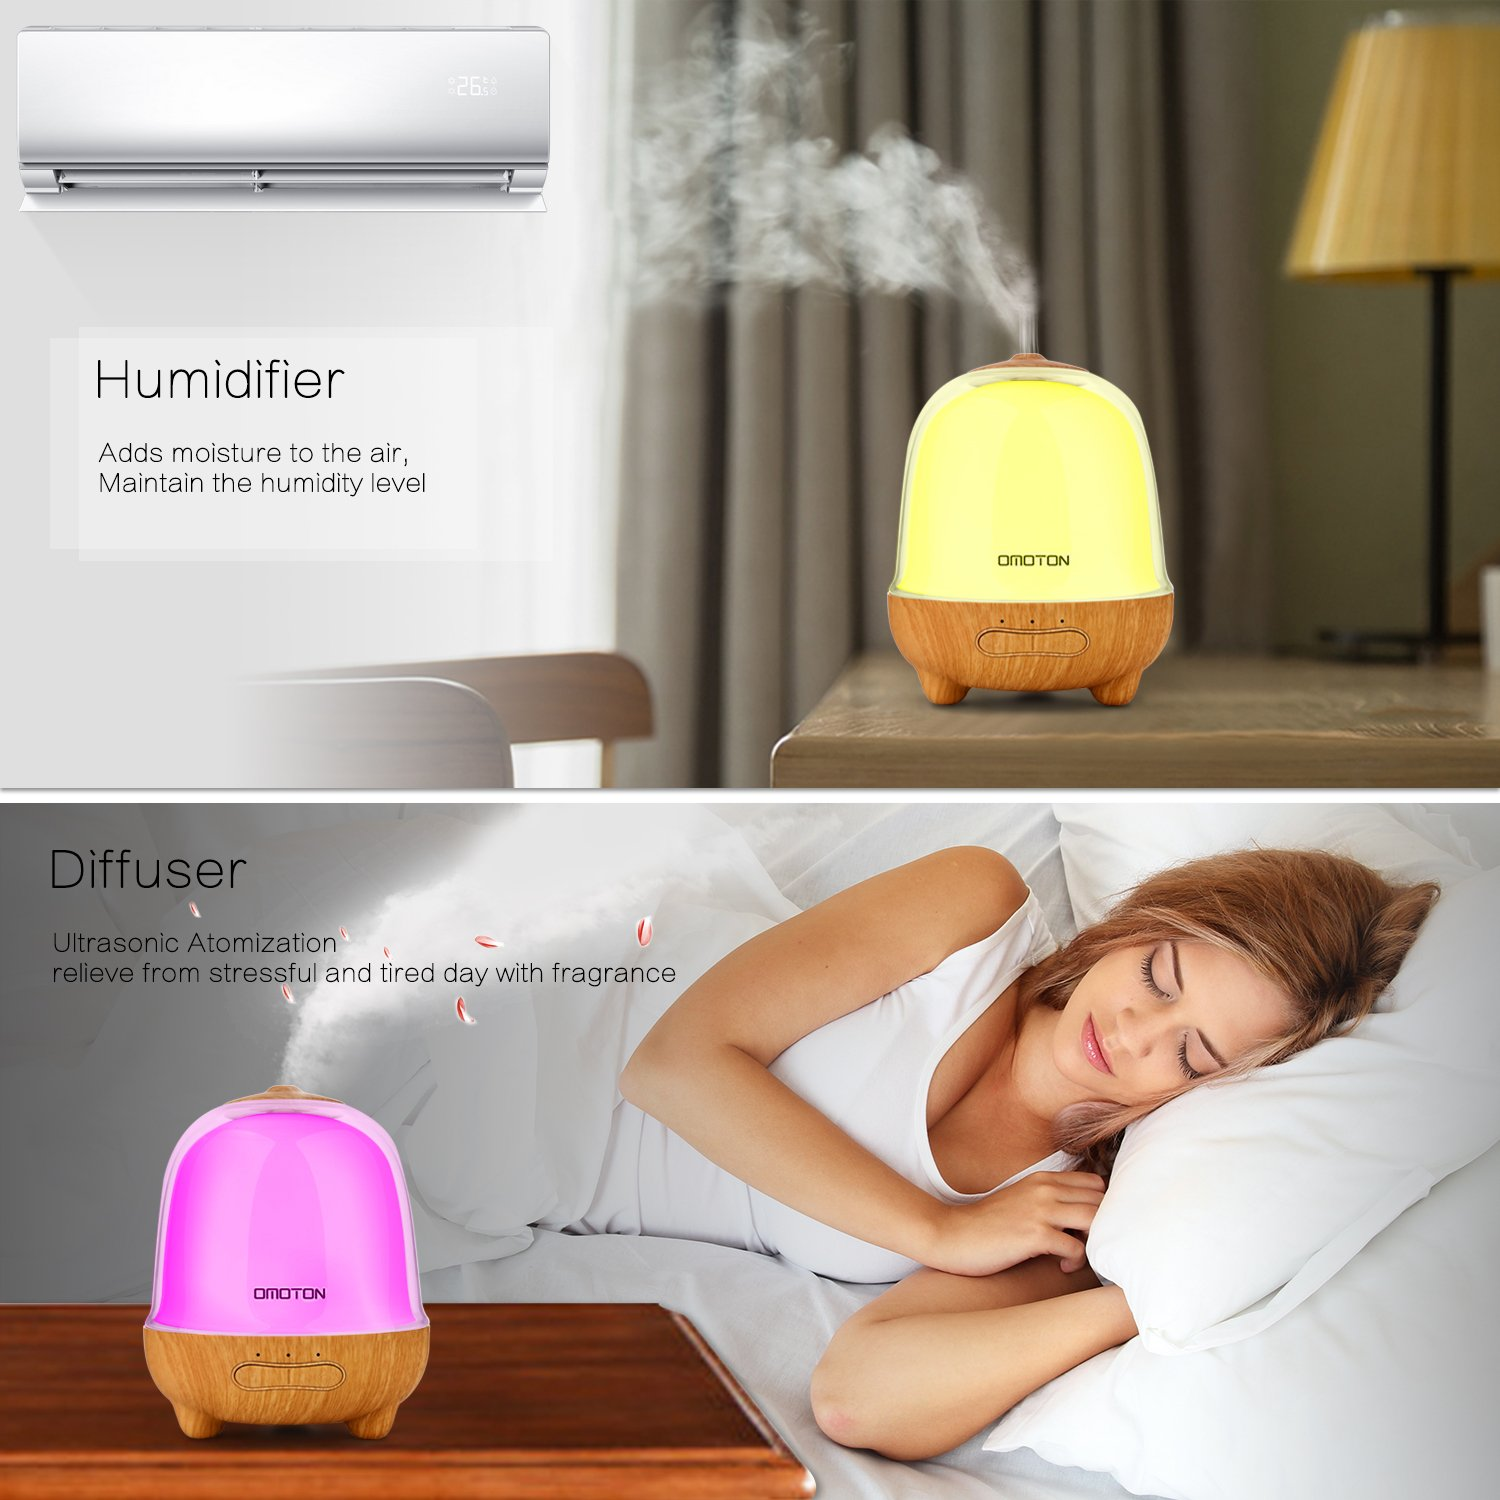 Essential Oil Diffuser, OMOTON 150ml Aromatherapy Diffuser Ultrasonic Aroma Humidifier with 7 Colored LED Lights and Waterless Auto Shut-off Protection